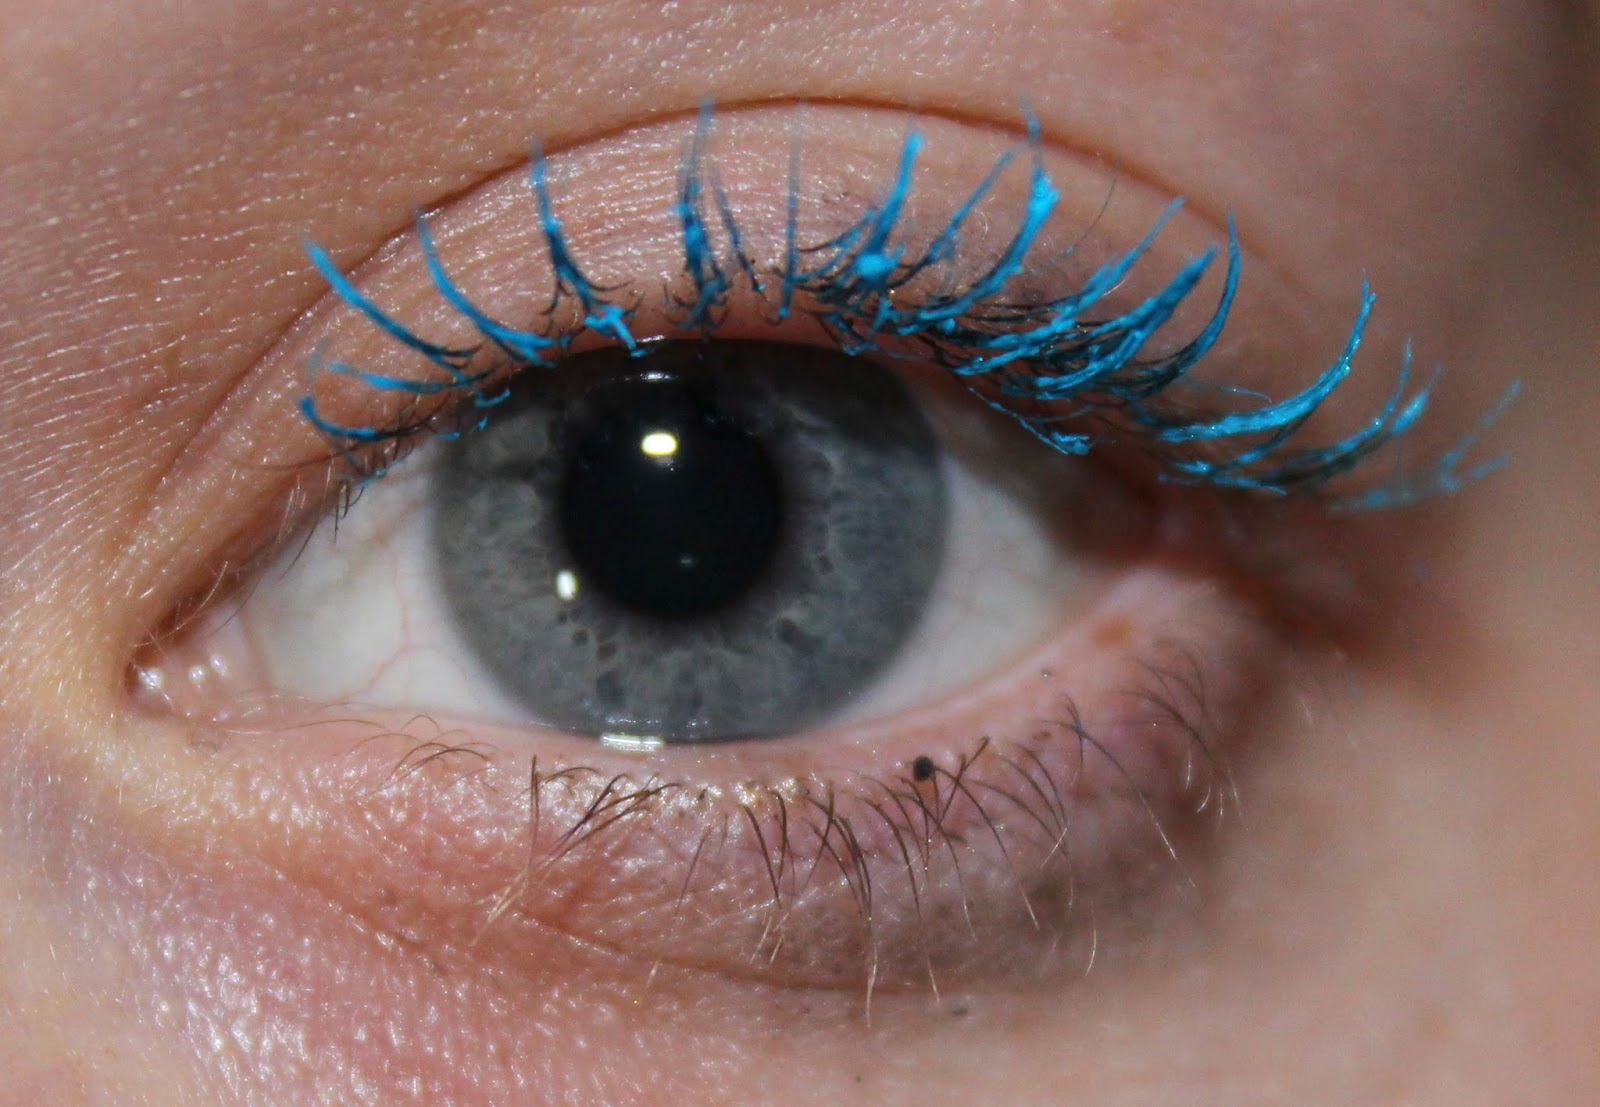 L'Oreal Miss Manga Mascara in Turquoise on lashes